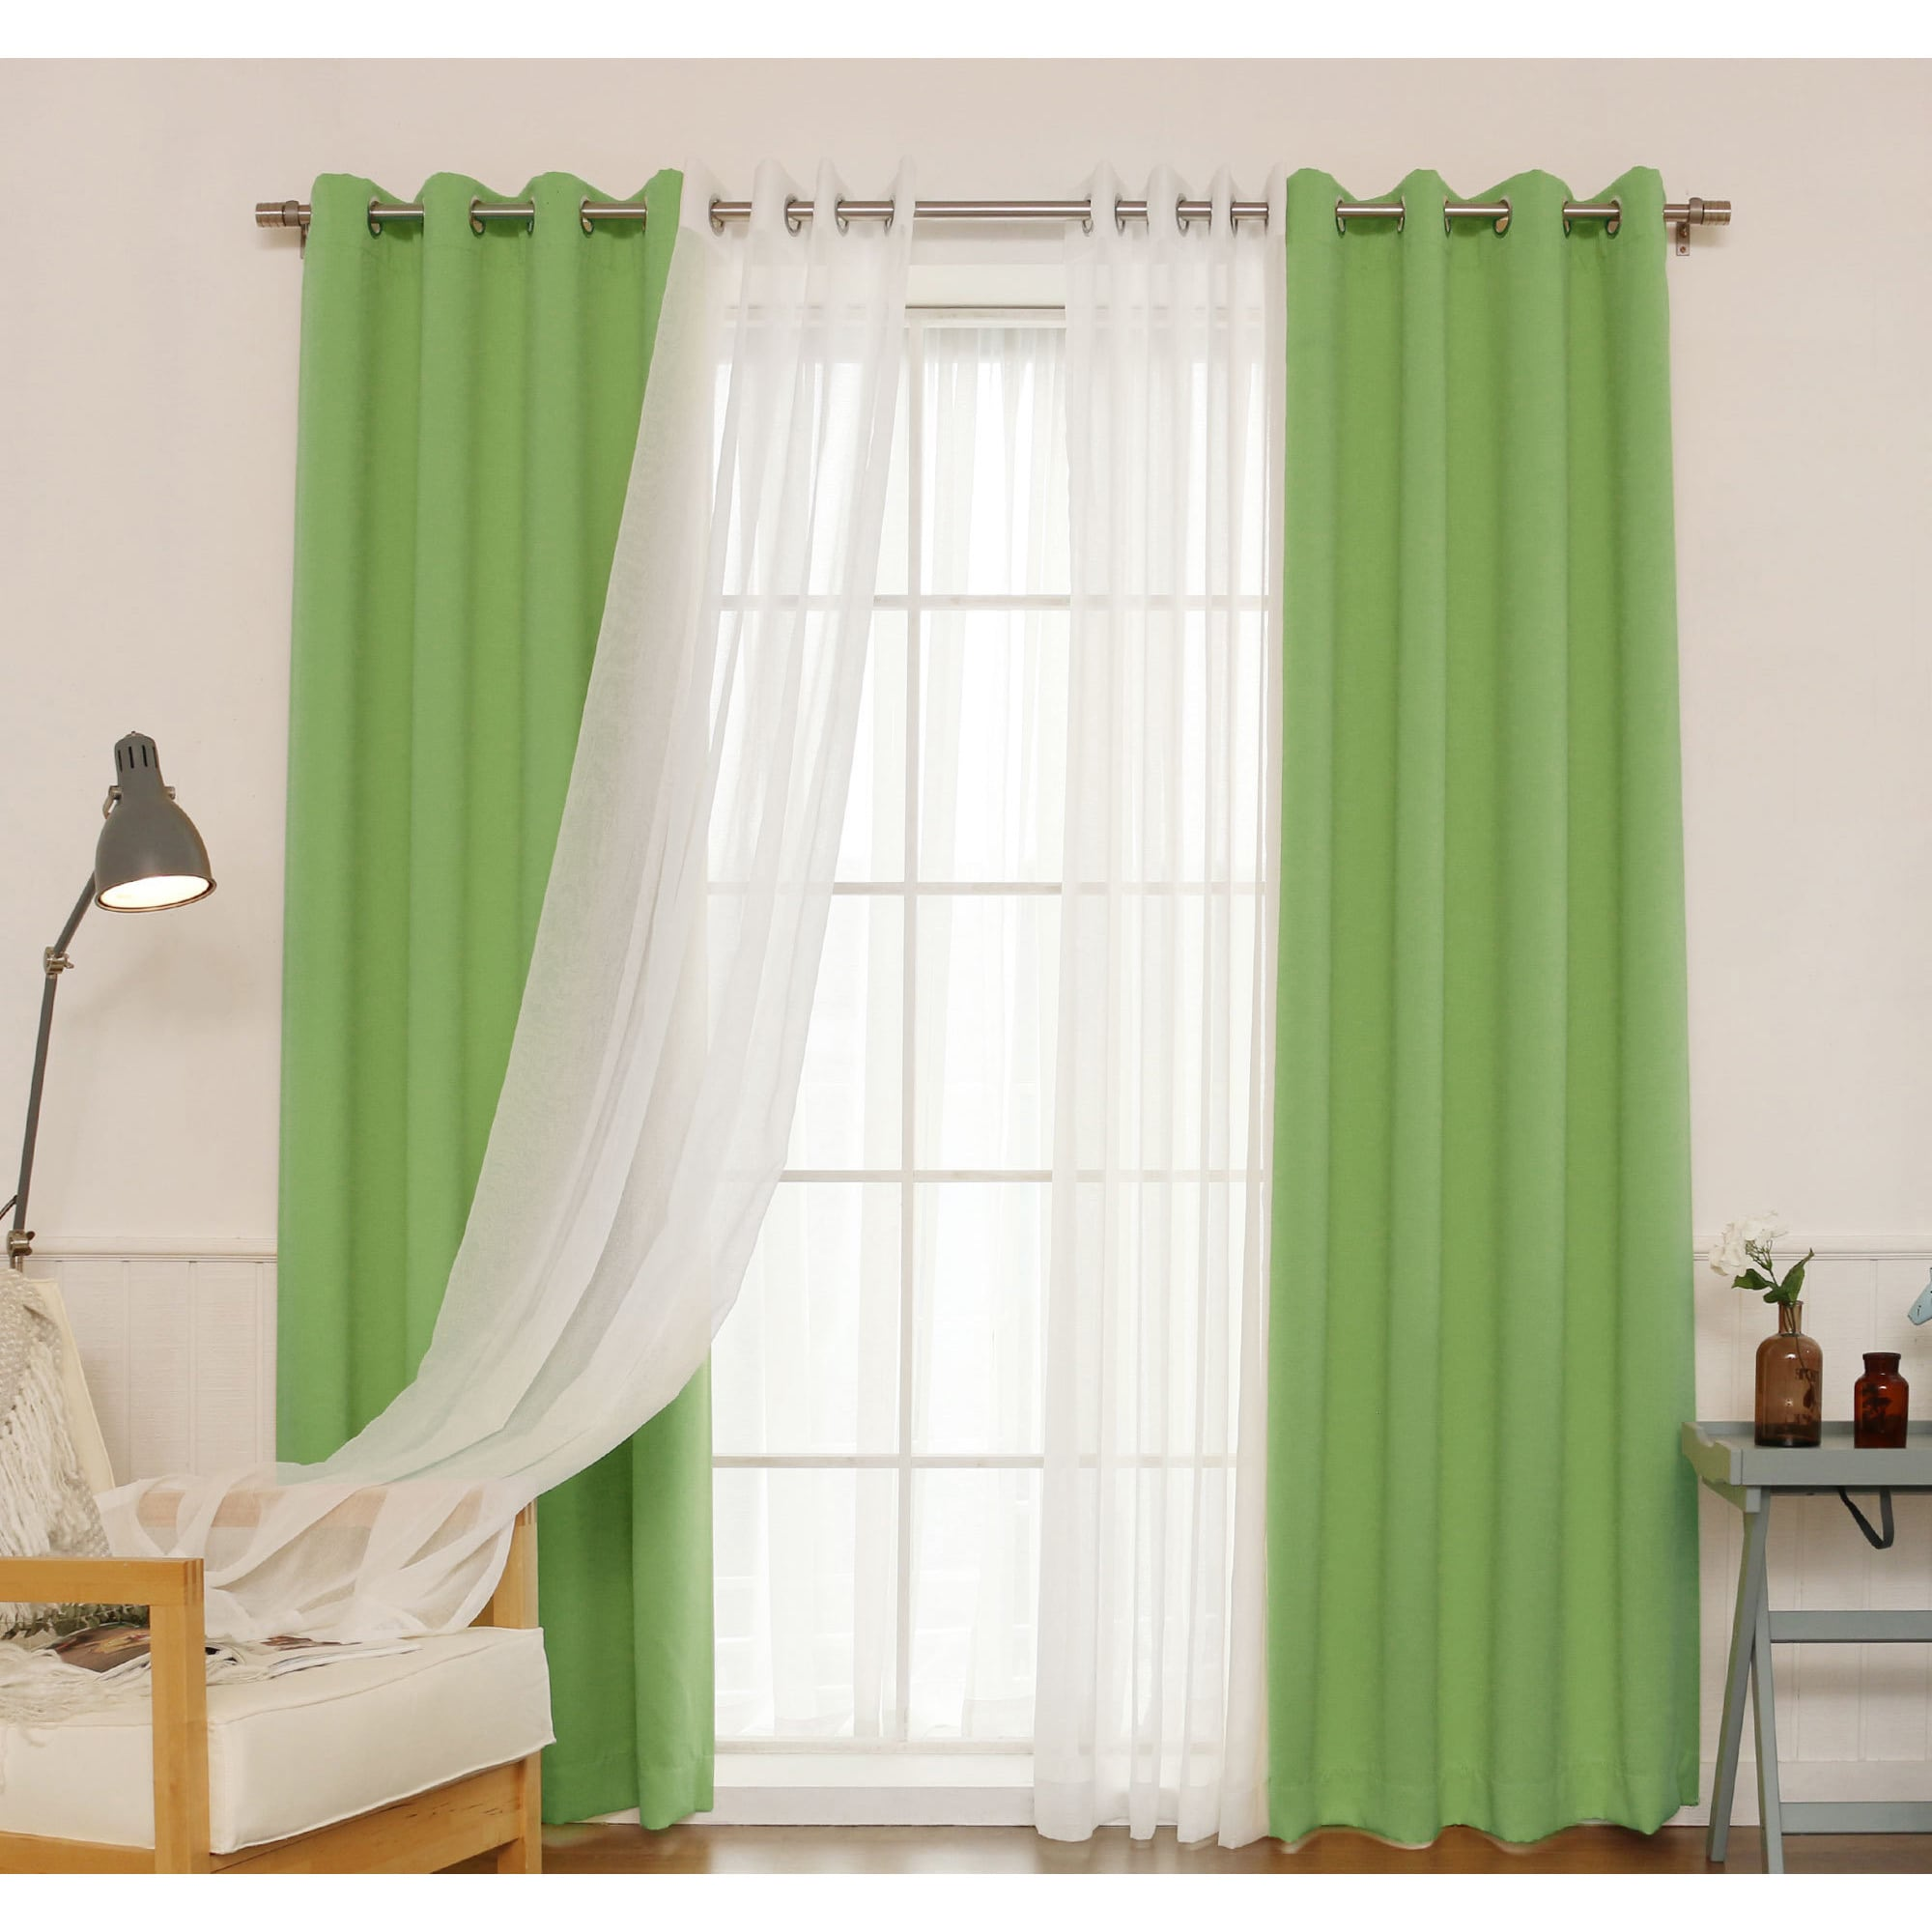 white grommet mint x curtain p tufts sheer panels curtains with window